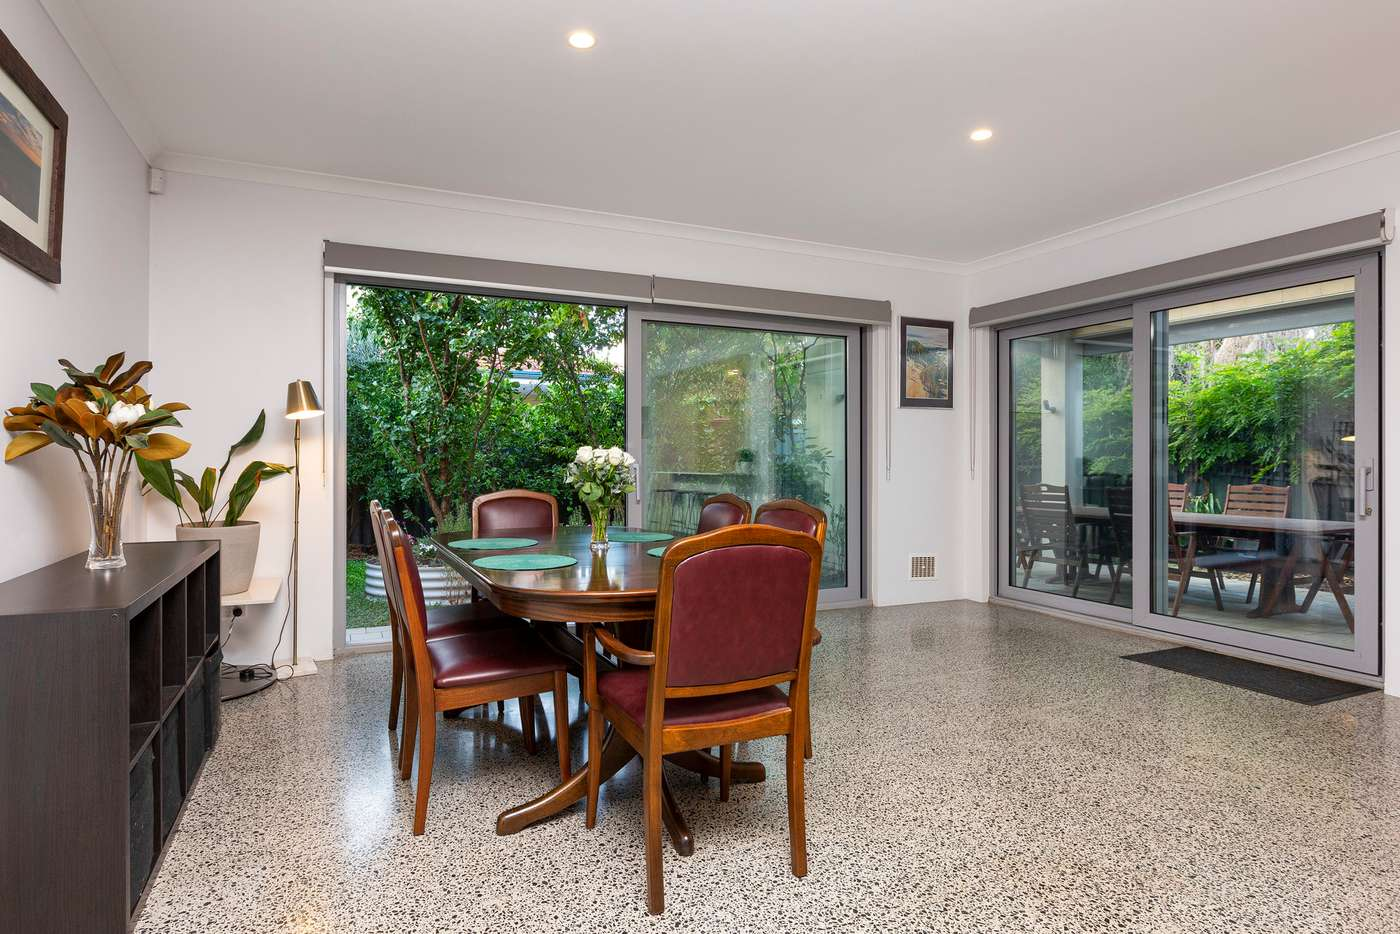 Fifth view of Homely house listing, 16 King Street, Kensington WA 6151